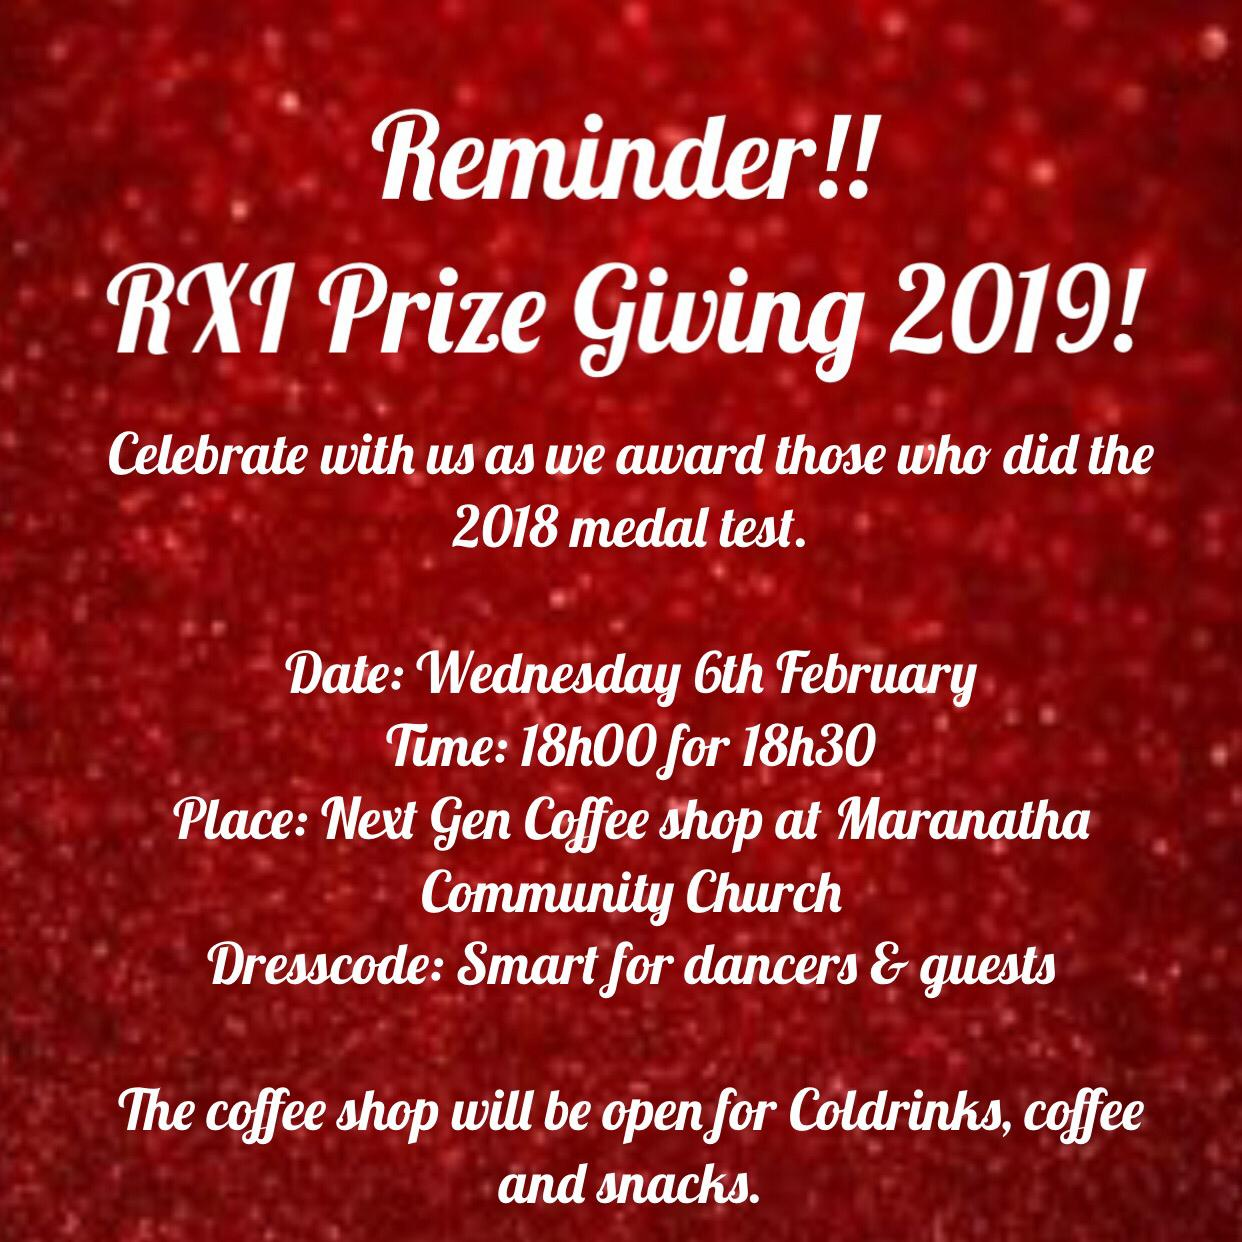 RX1 Prize Giving 2019